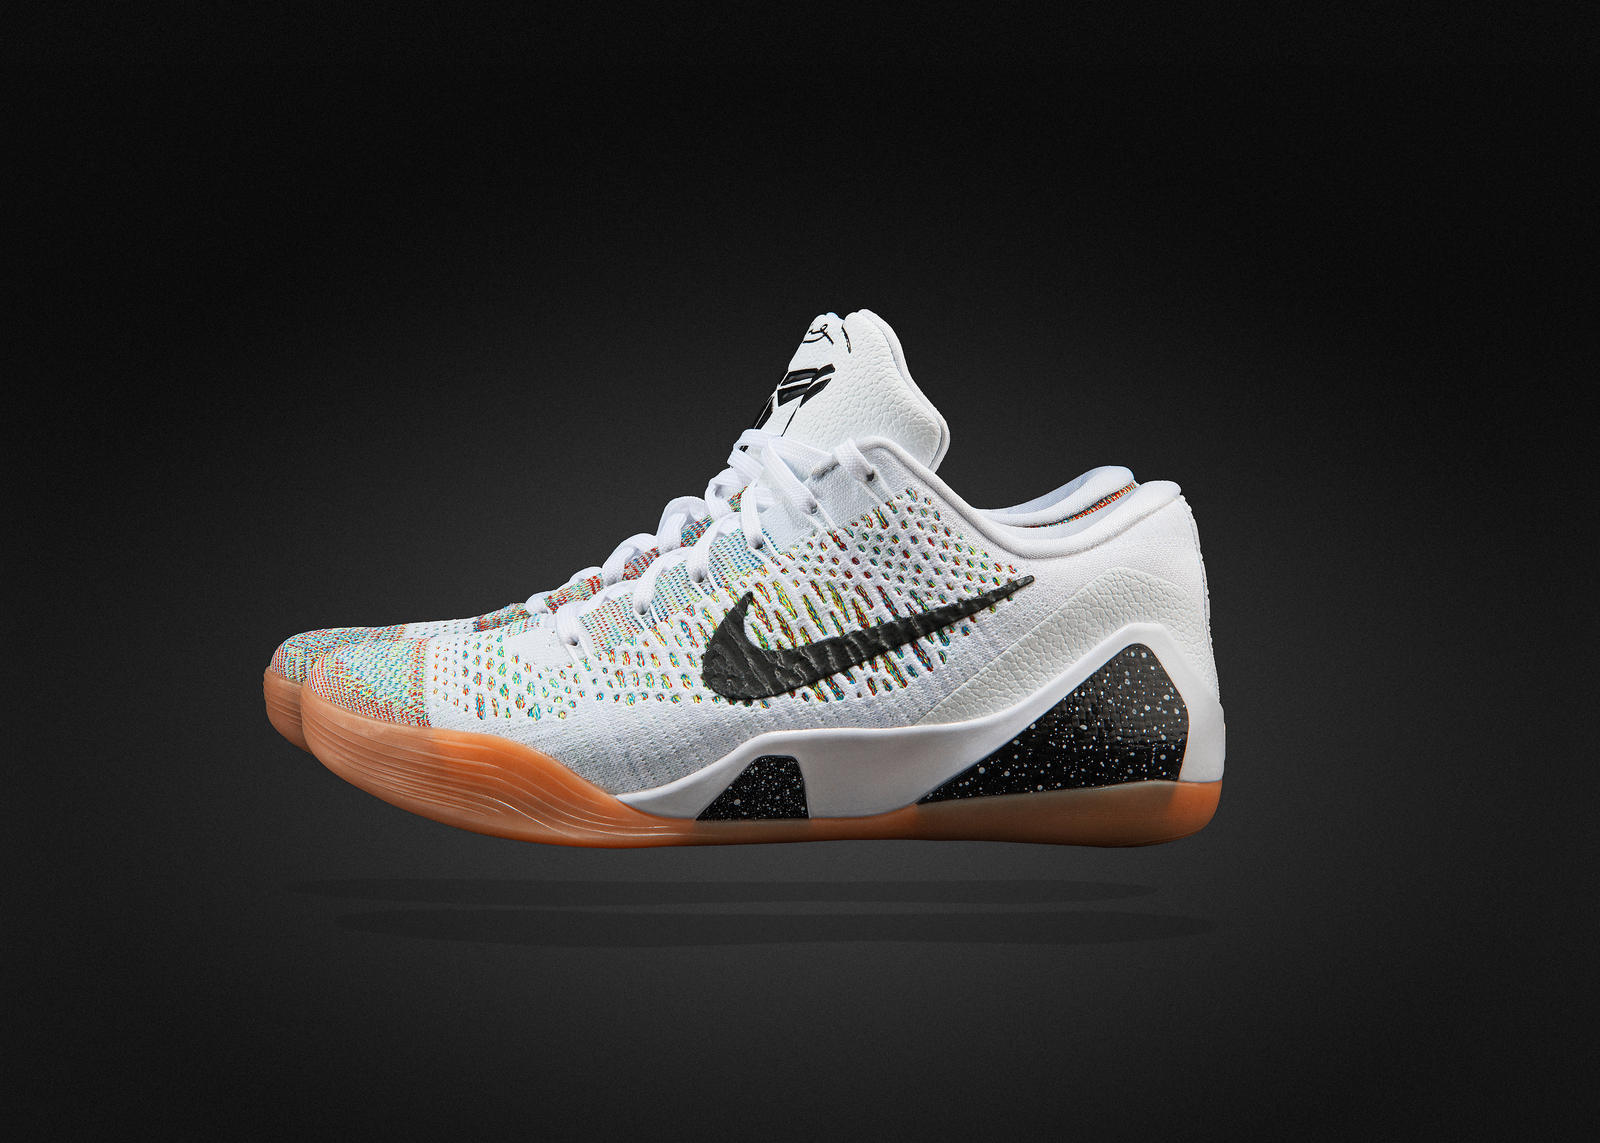 nike kobe 9 elite low price